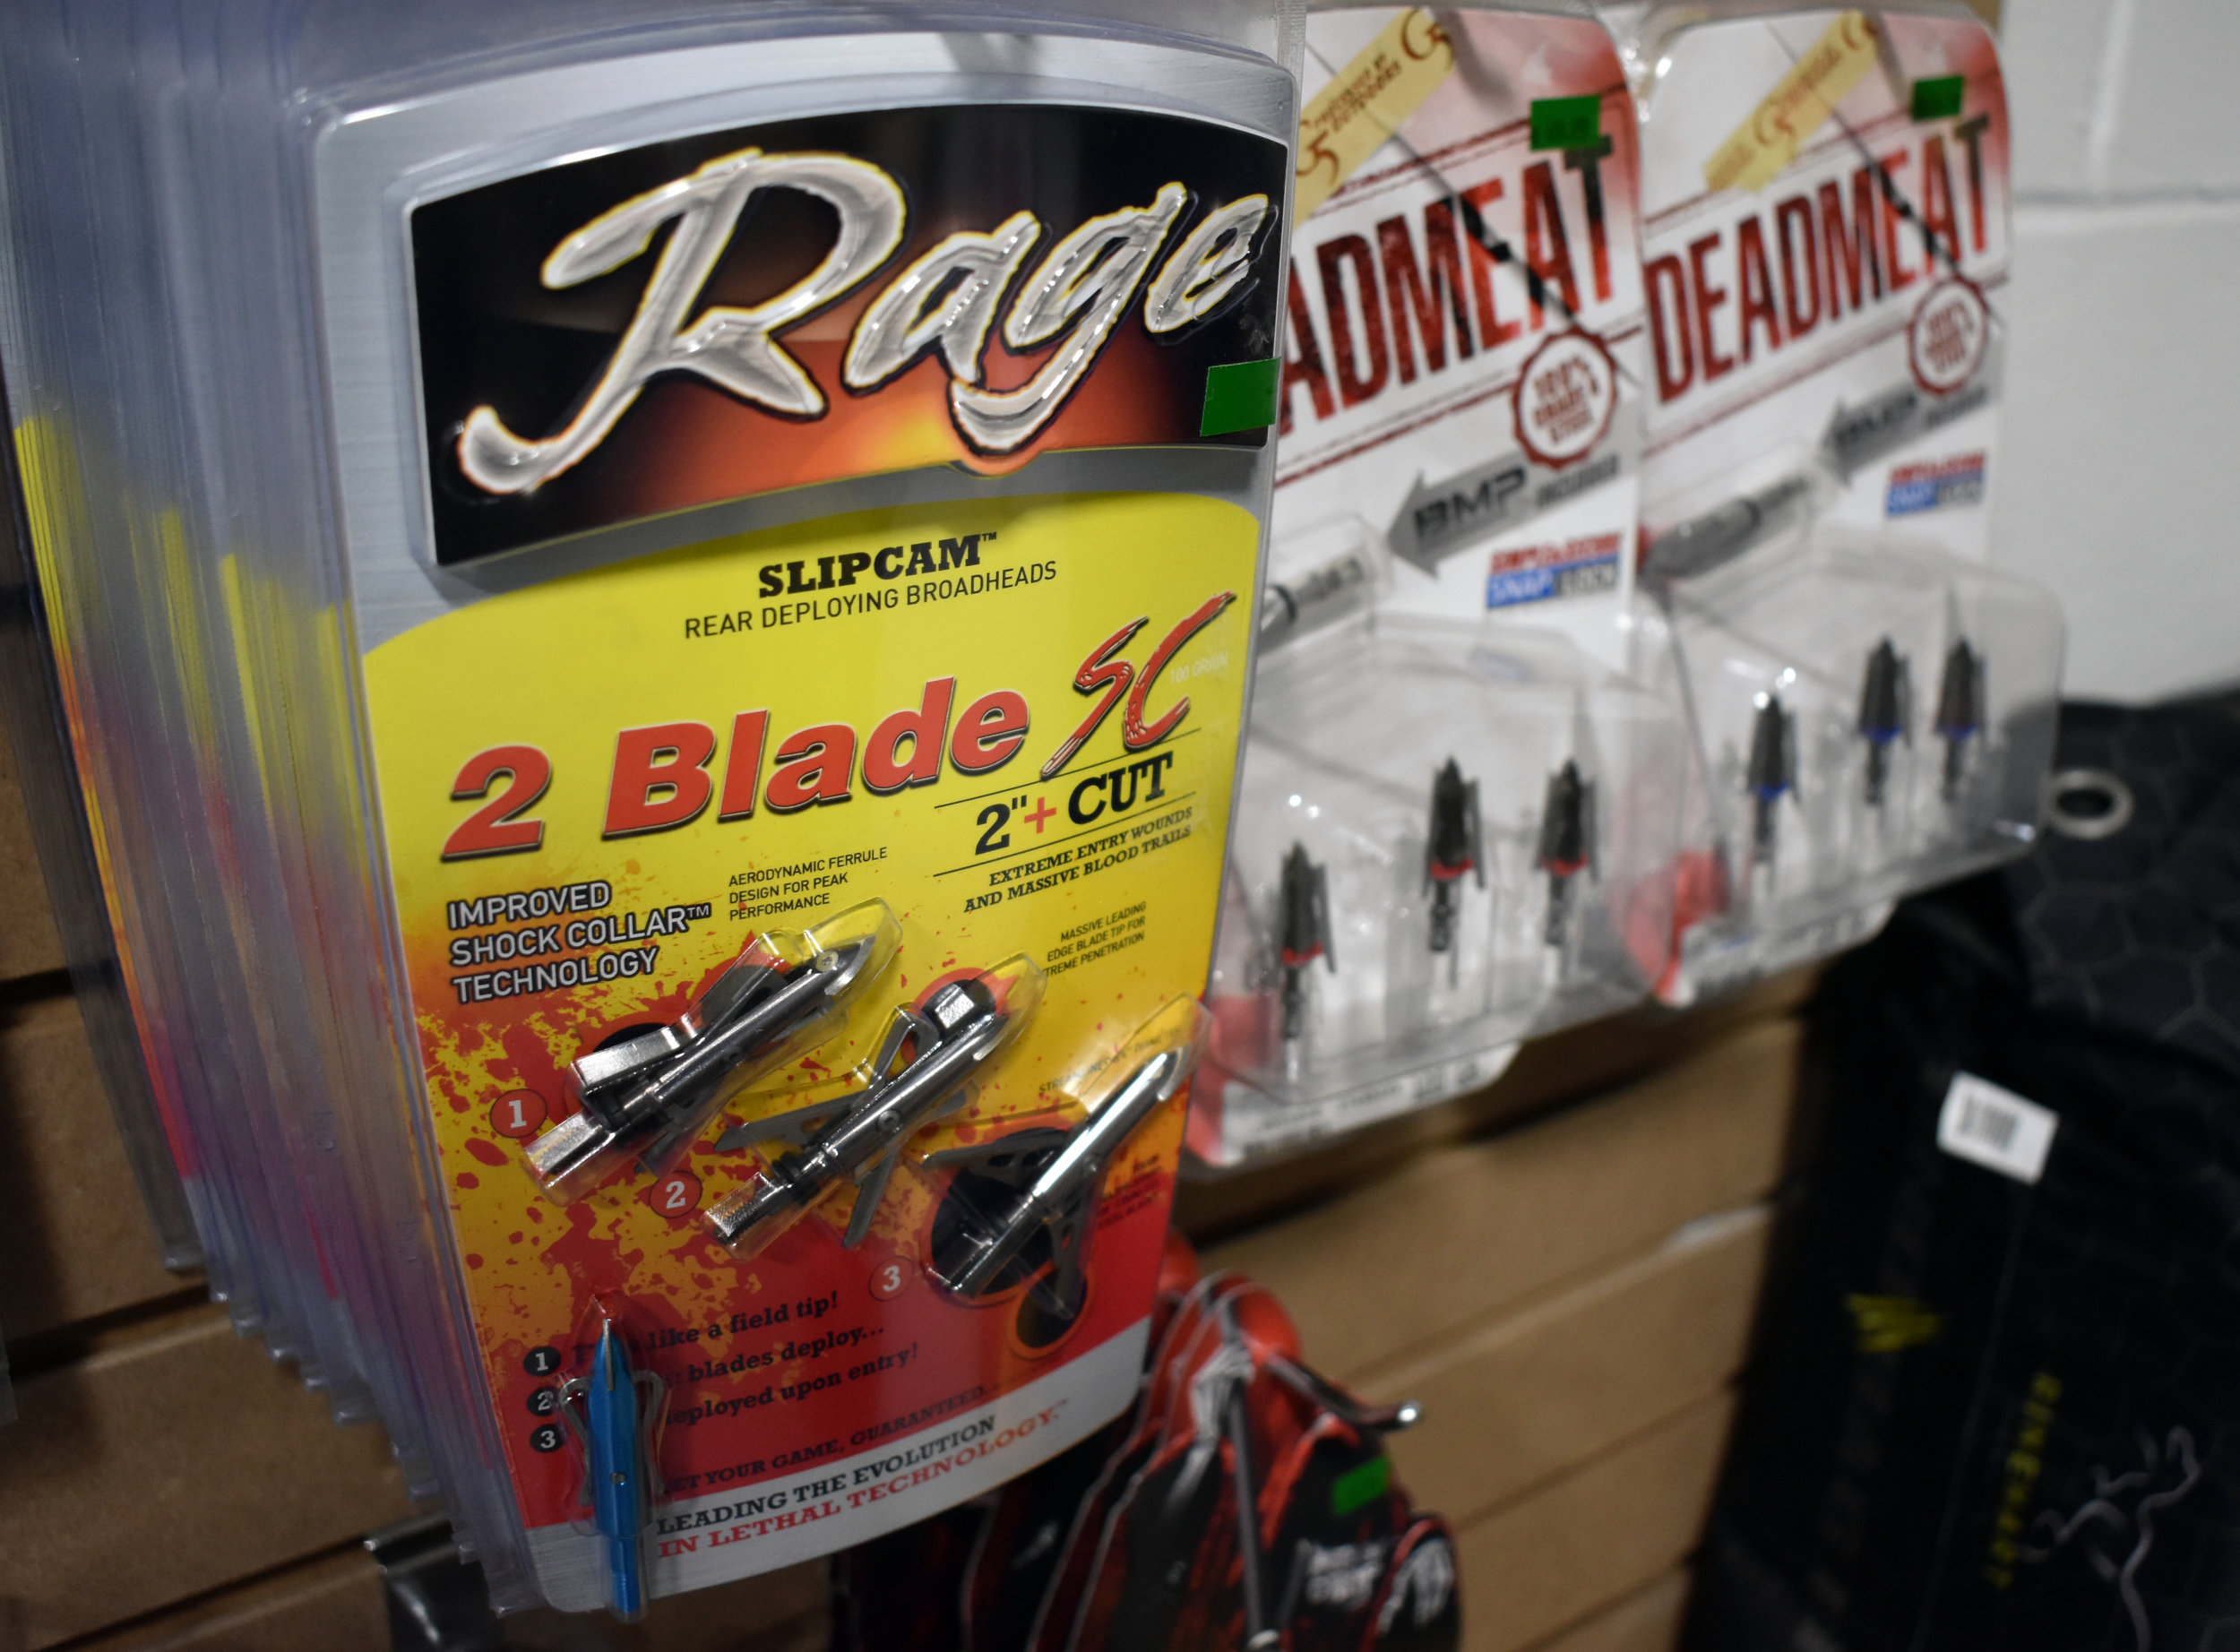 Broadheads - We stock Grim Reaper, Rage, G5, Muzzy and other top brands of broadheads.